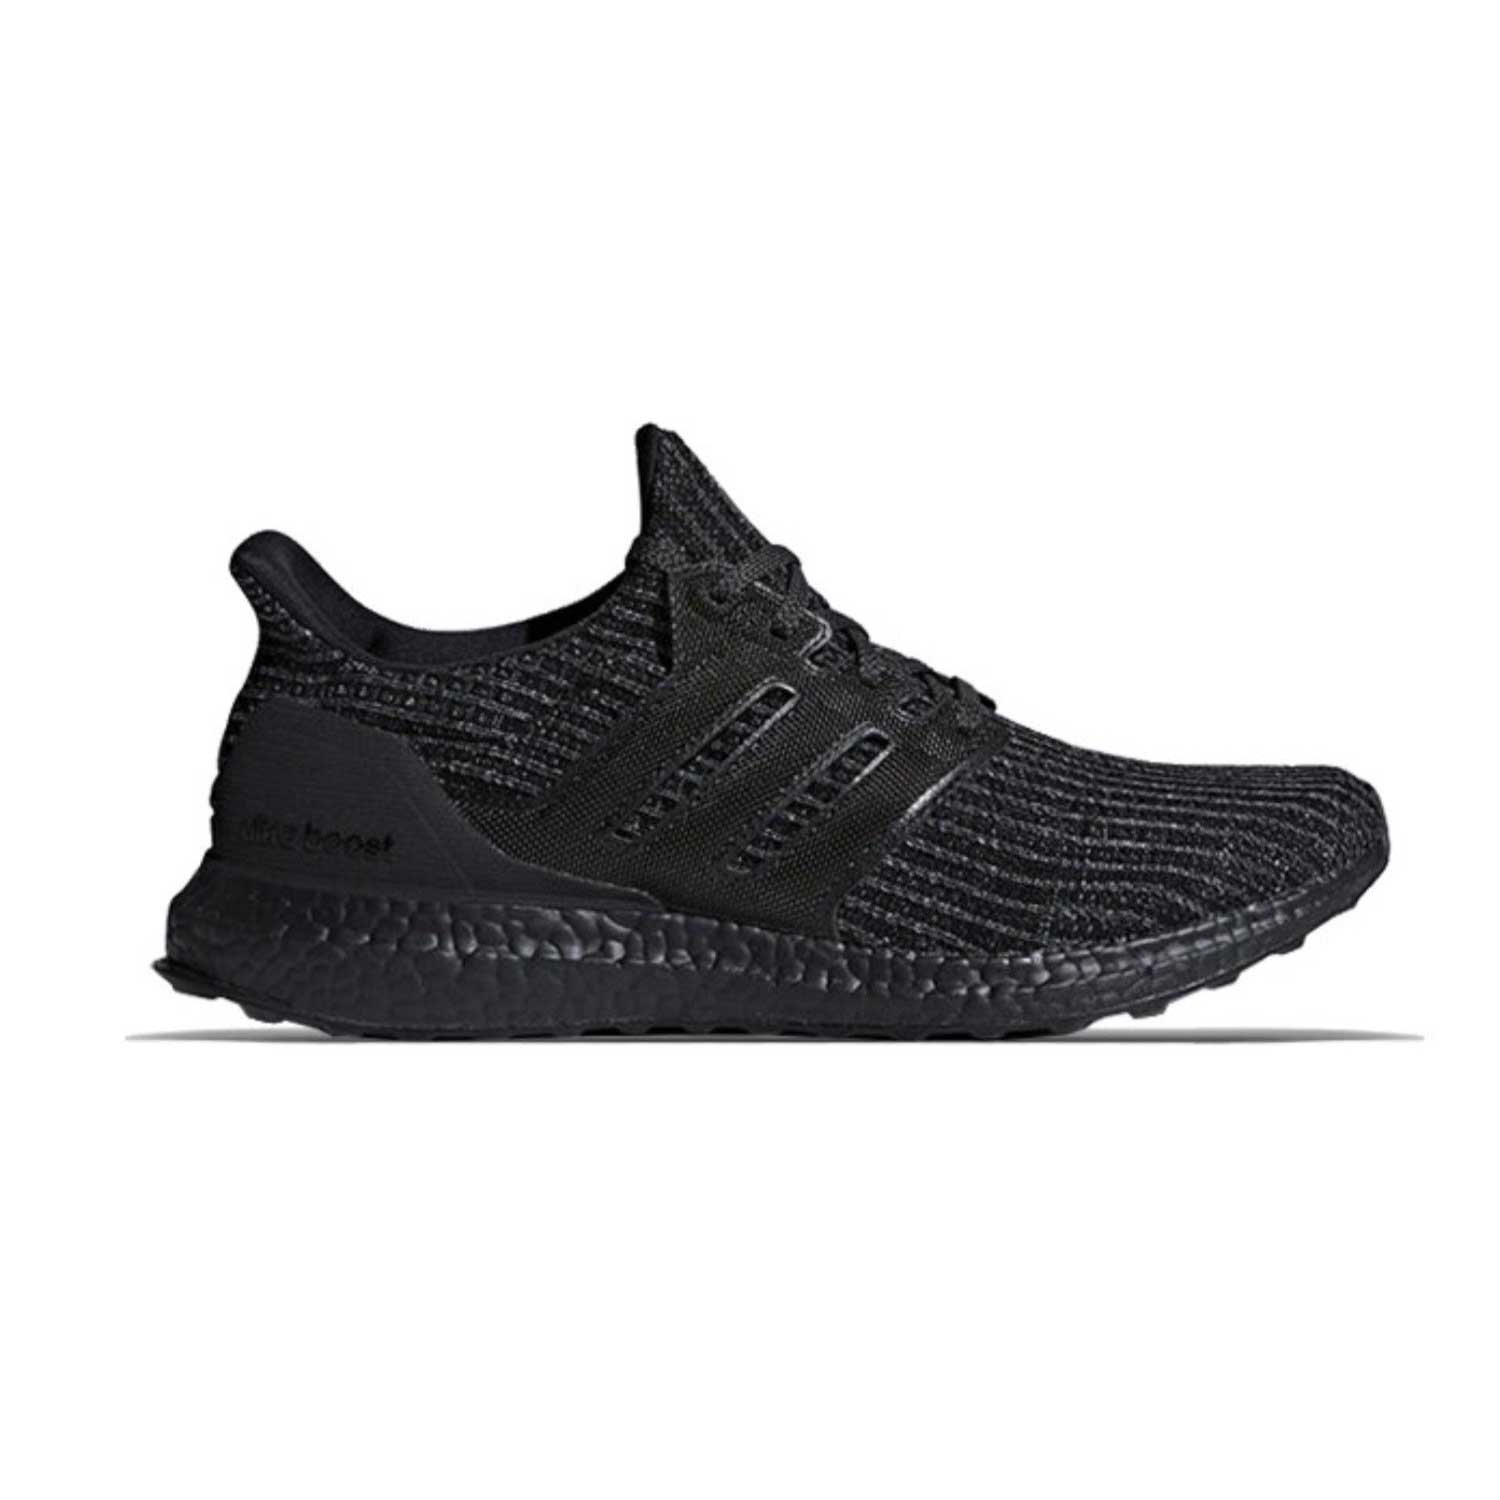 new concept 9c950 3d6bb adidas Ultra Boost 4.0 'Triple Black' - BB6171